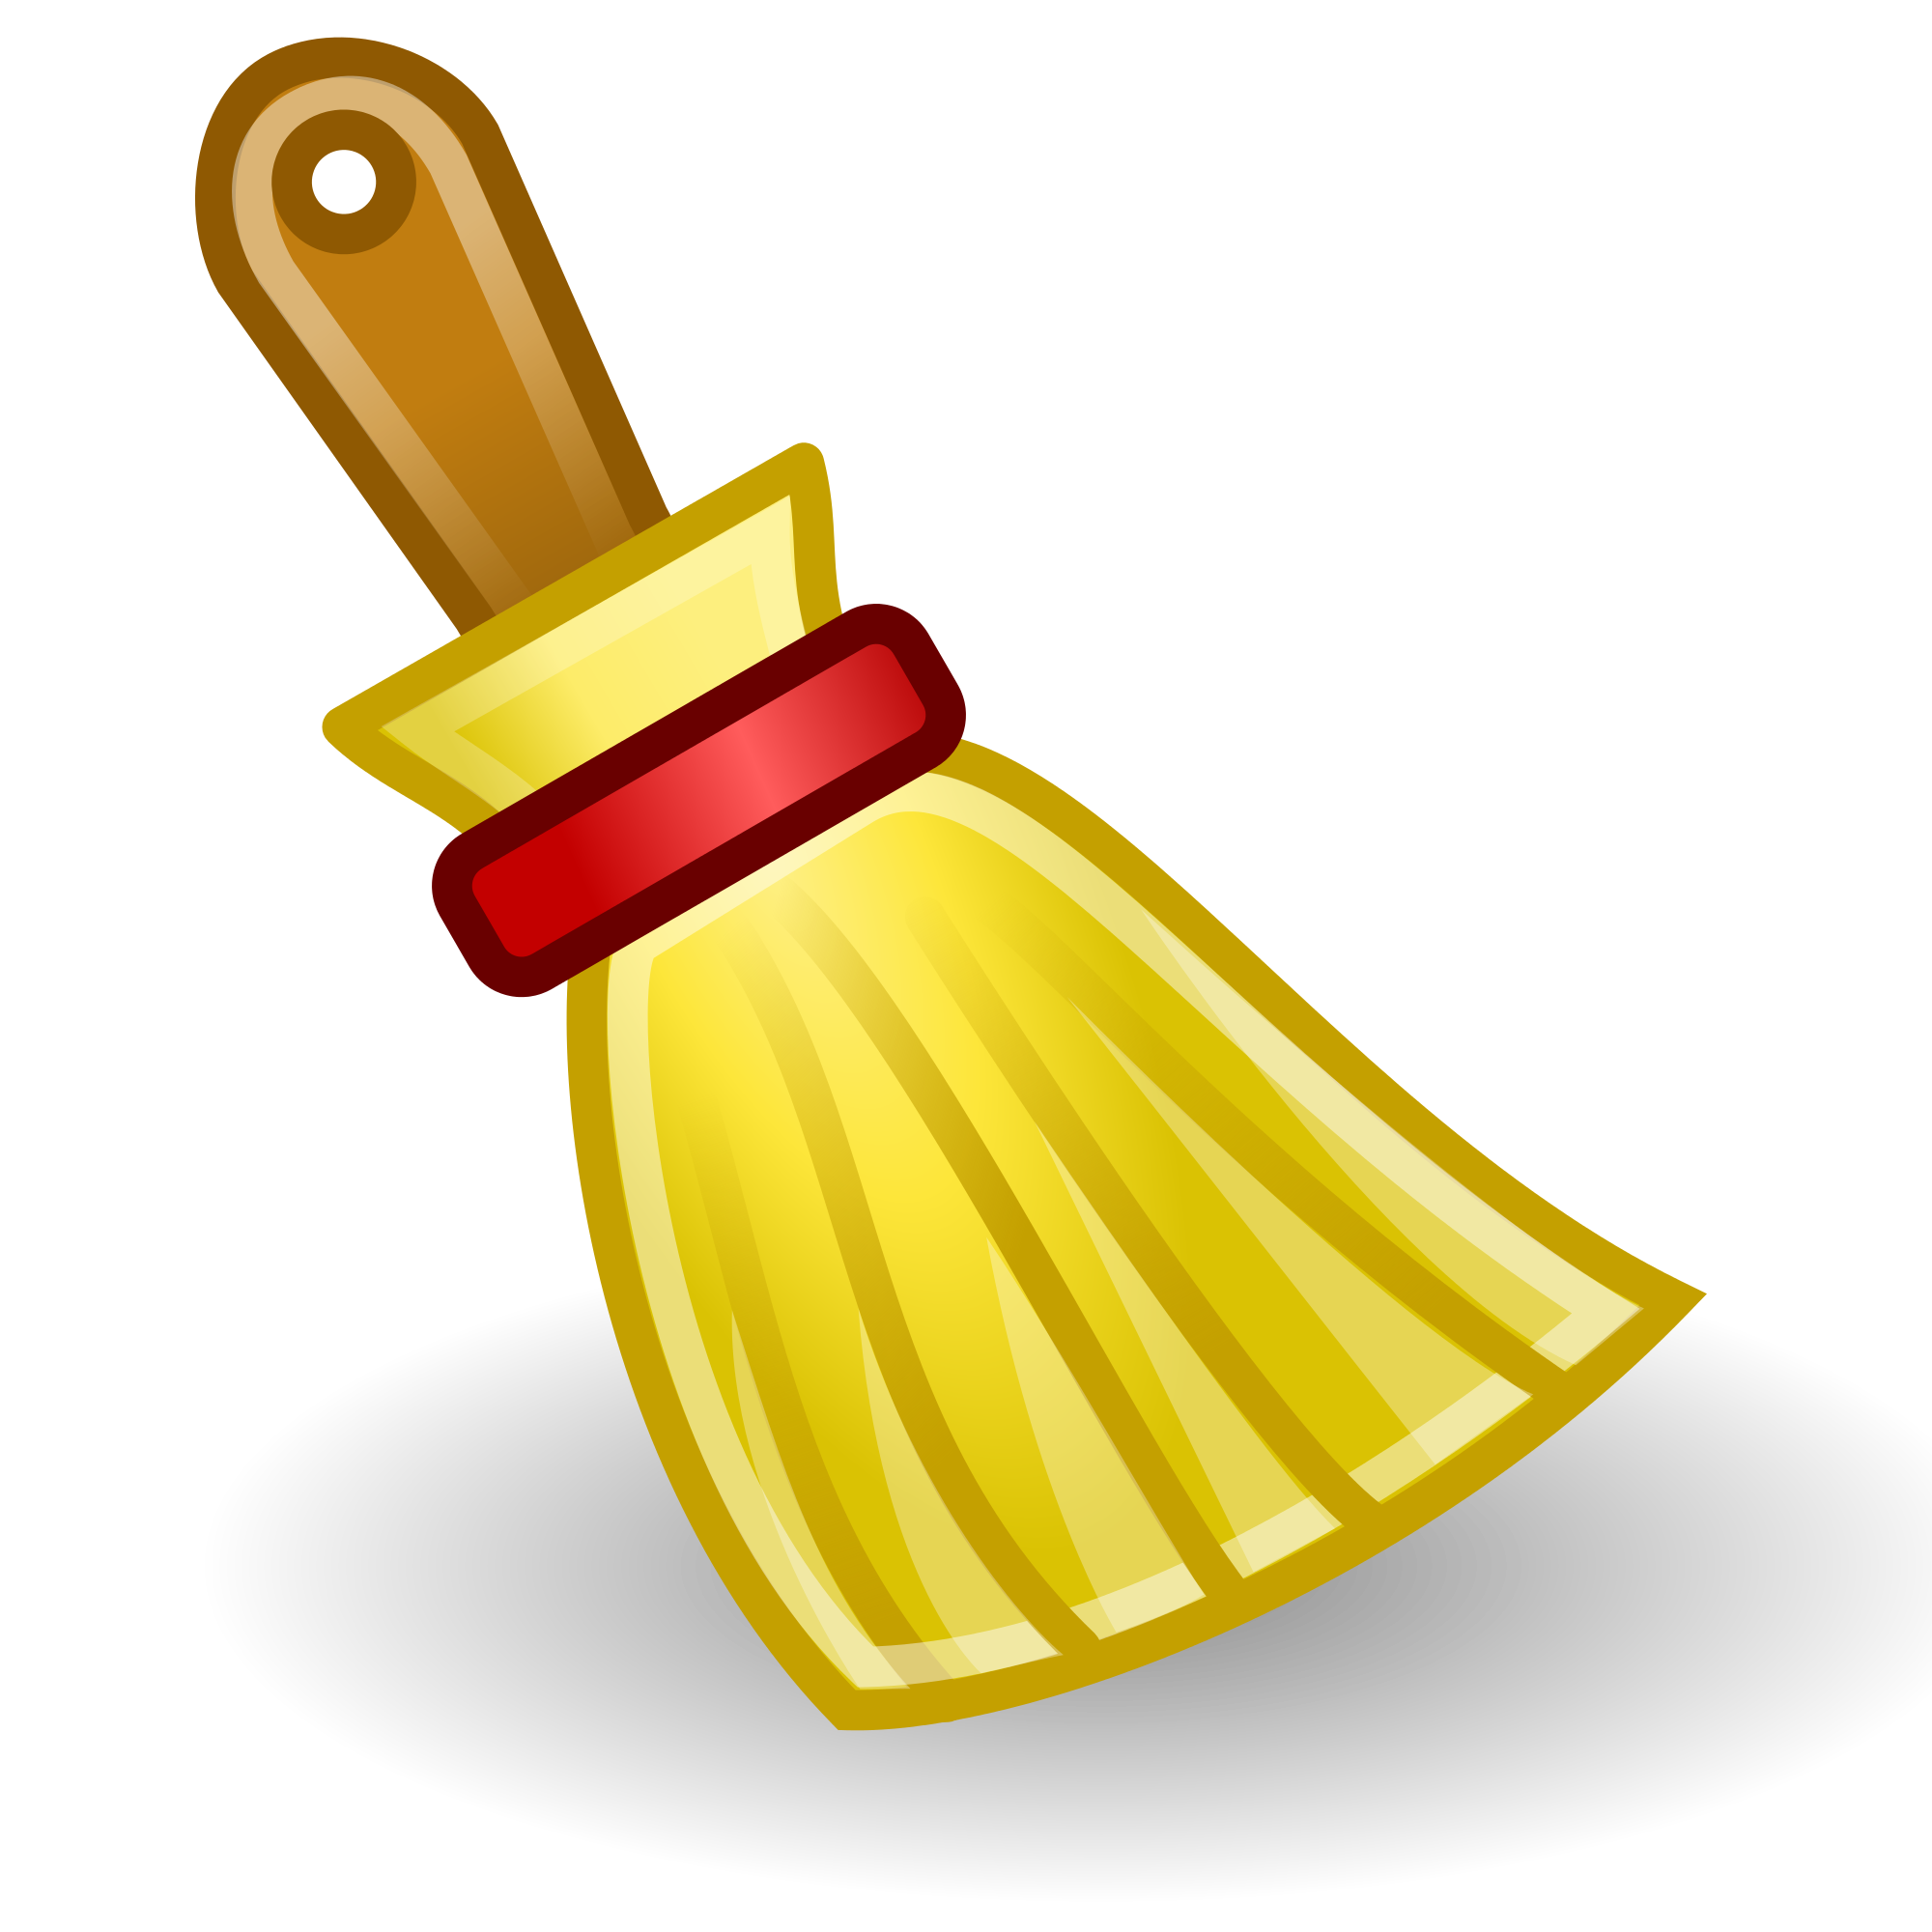 Png images free download. Clean clipart broom